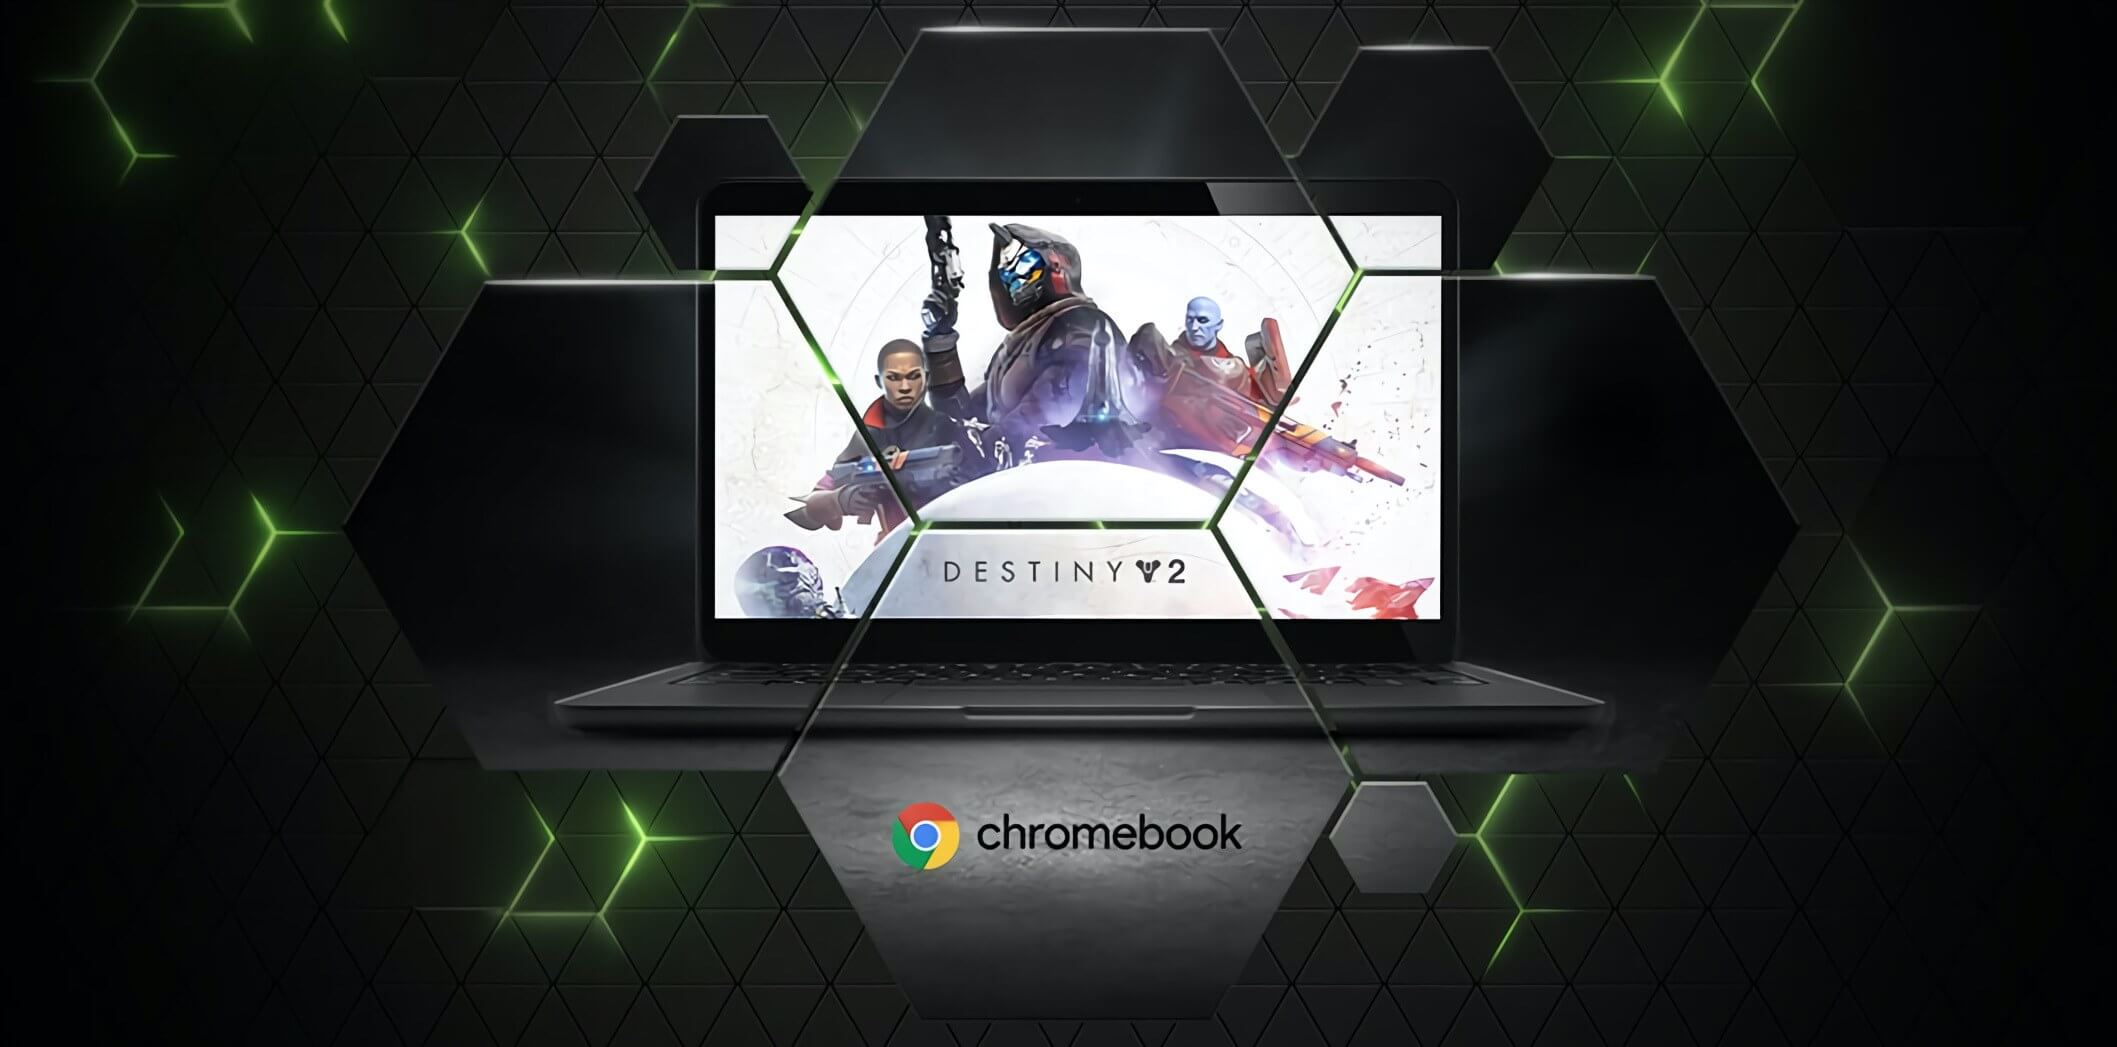 GeForce Now brings cloud gaming to even mediocre Chromebooks